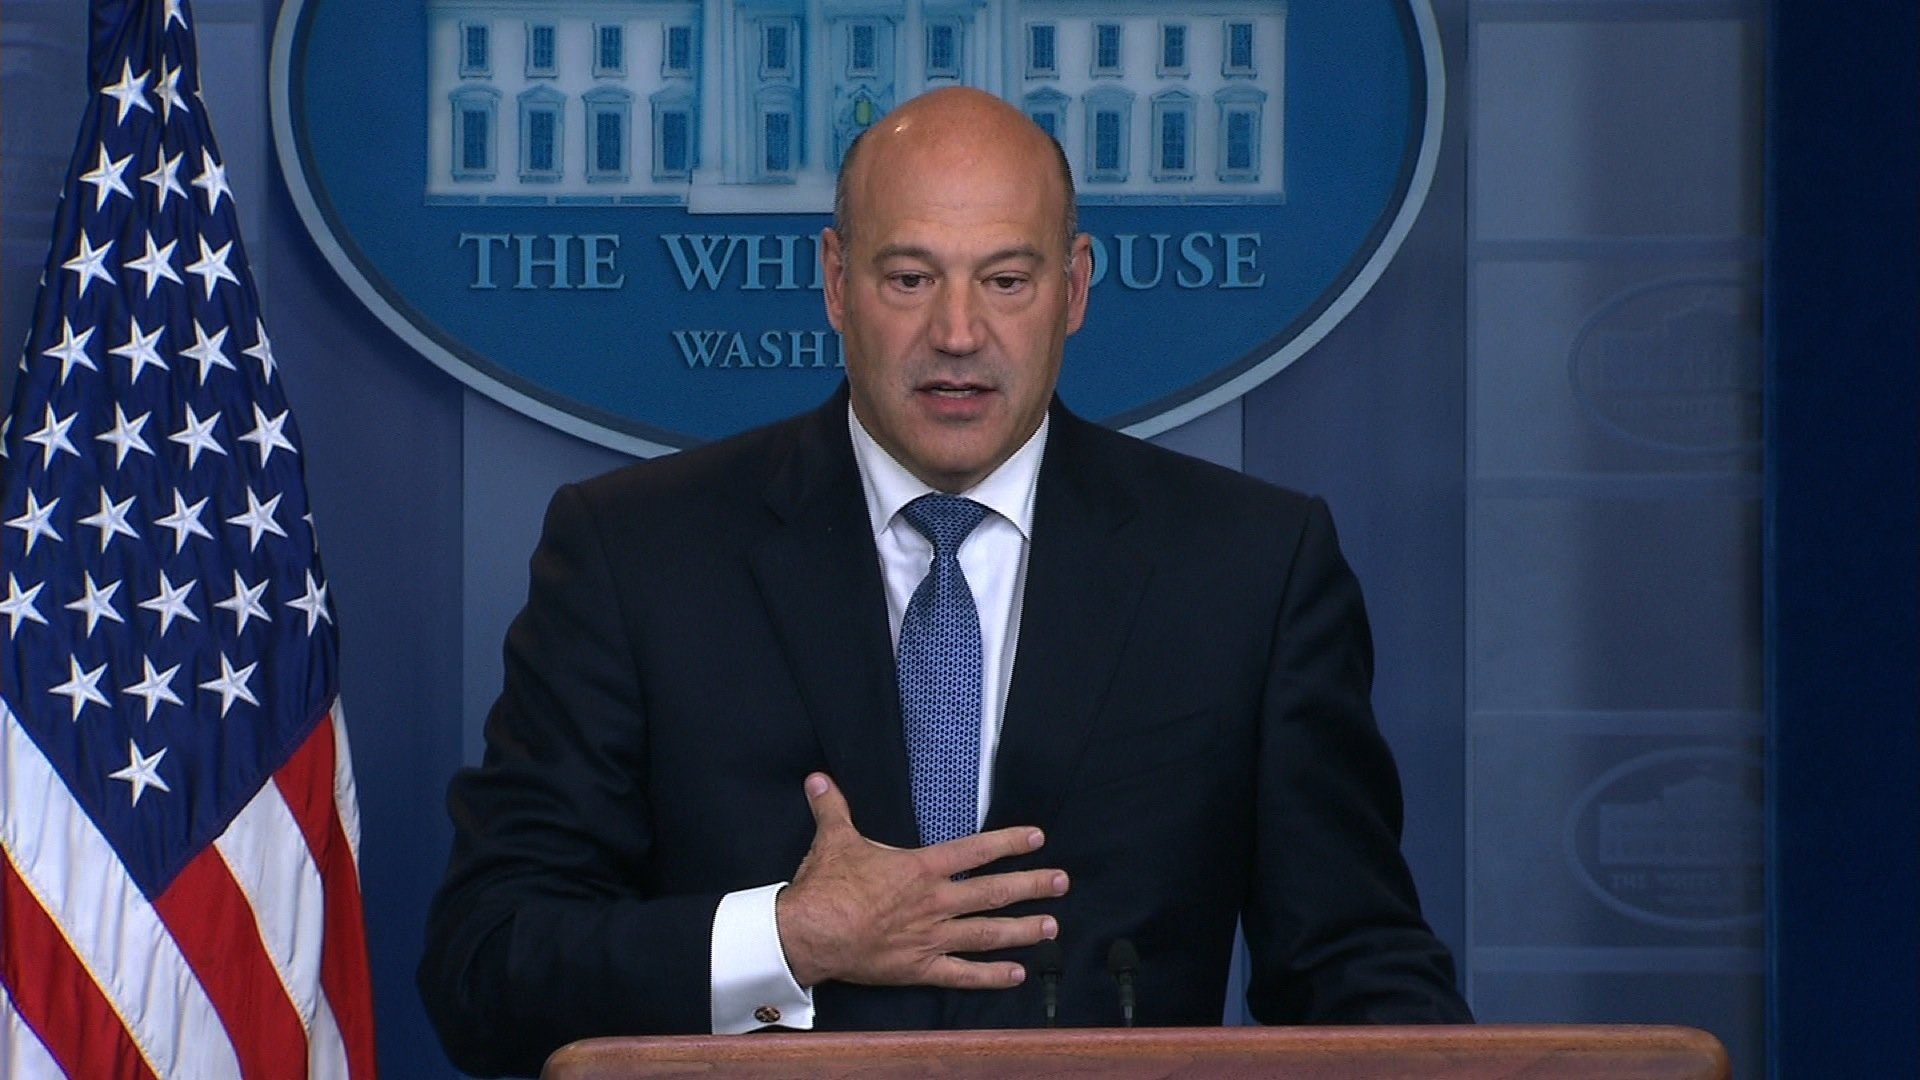 President Donald Trump's top economic adviser Gary Cohn is resigning, the White House announced on Tuesday.